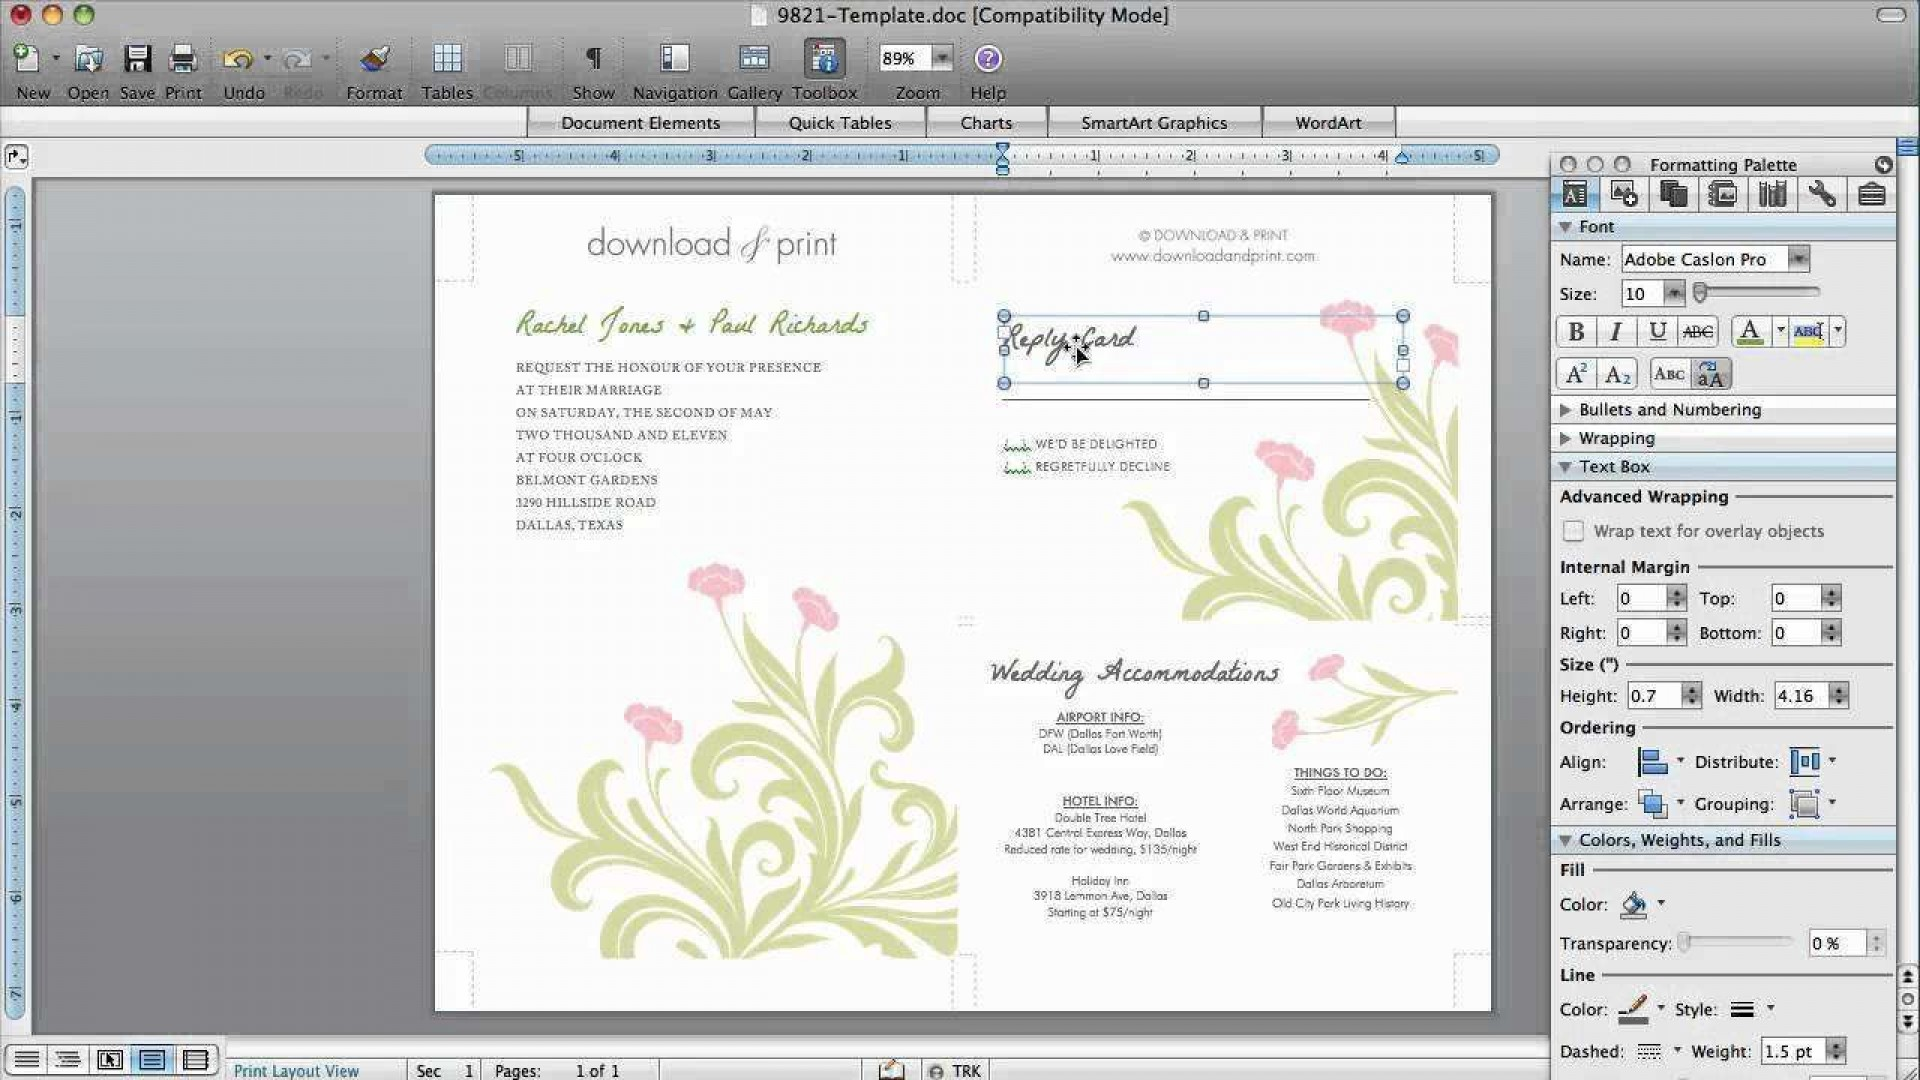 001 Awesome Birthday Card Template For Word 2010 Idea  Greeting Microsoft1920